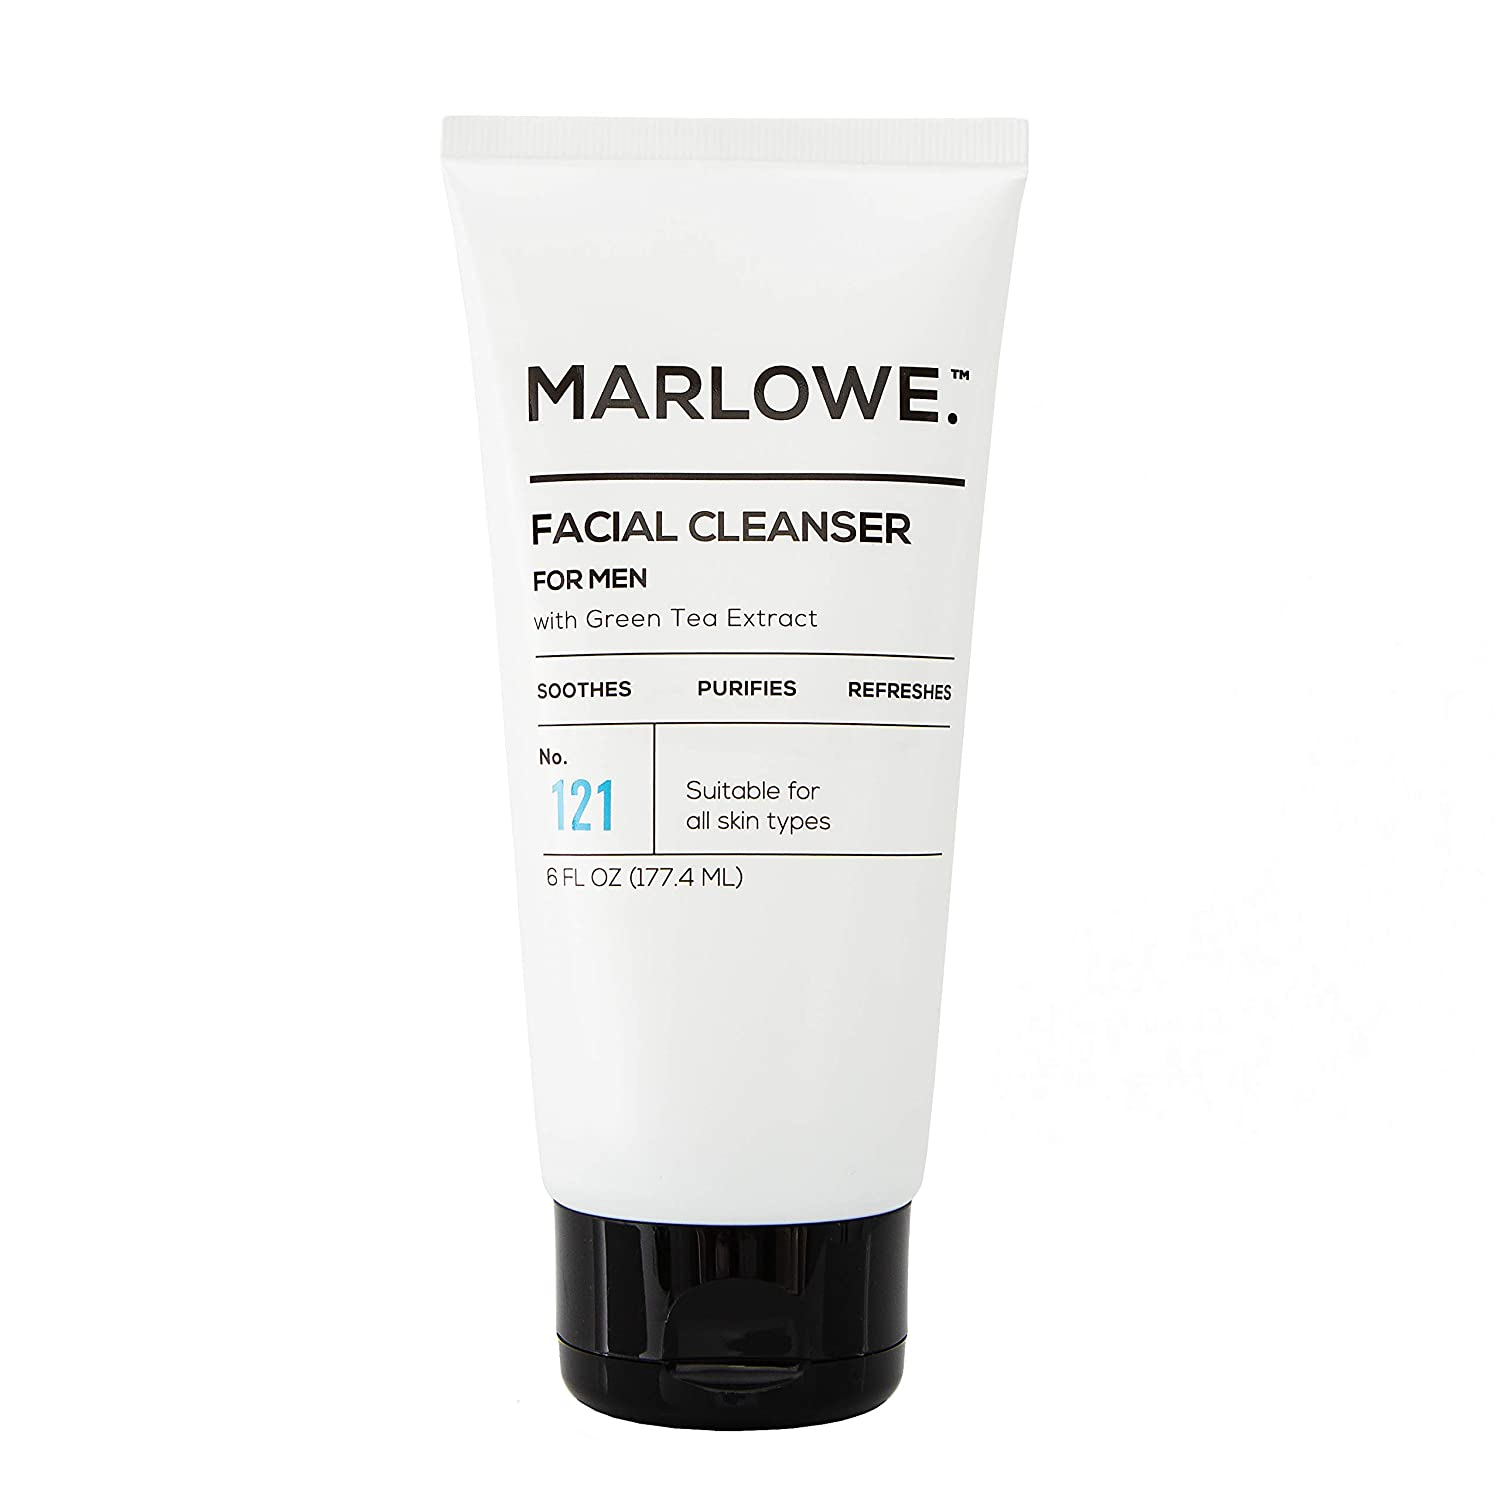 Marlowe no 121 facial cleanser for men face wash